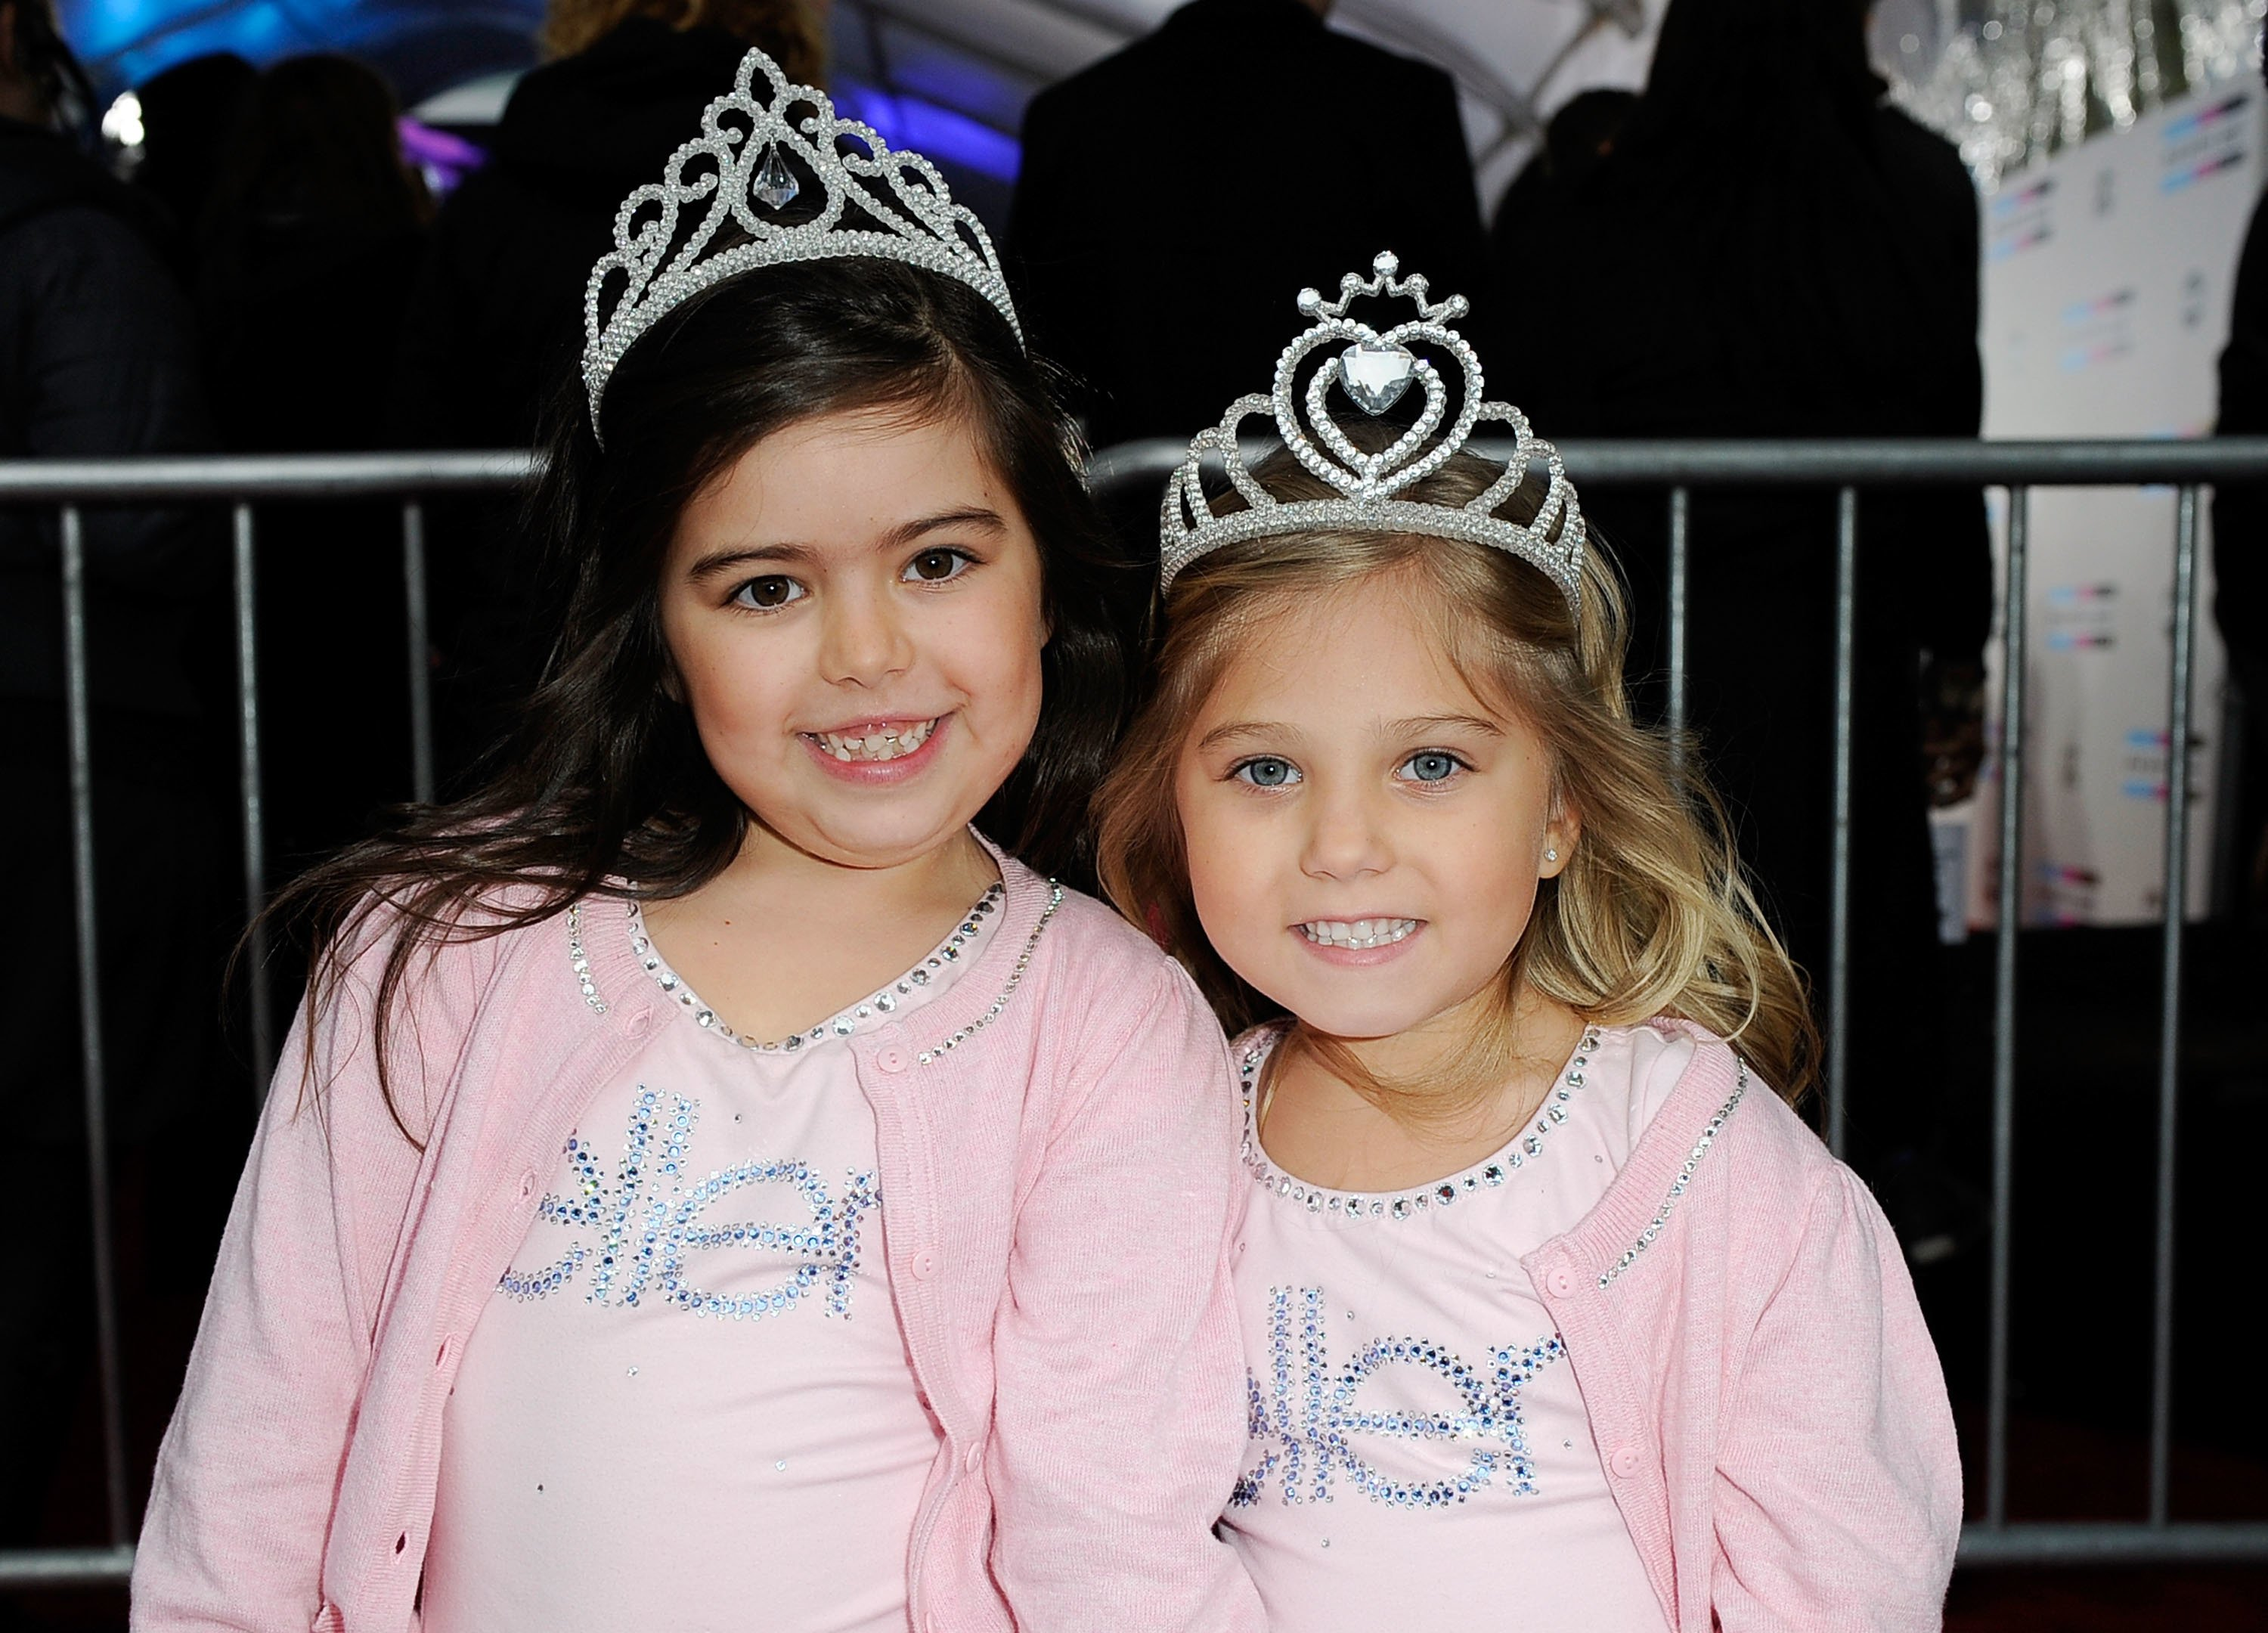 Sophia Grace Brownlee (R) and Rosie Brownlie arrive at the 2011 American Music Awards held at Nokia Theatre L.A. LIVE on November 20, 2011 in Los Angeles, California | Photo: Getty Images